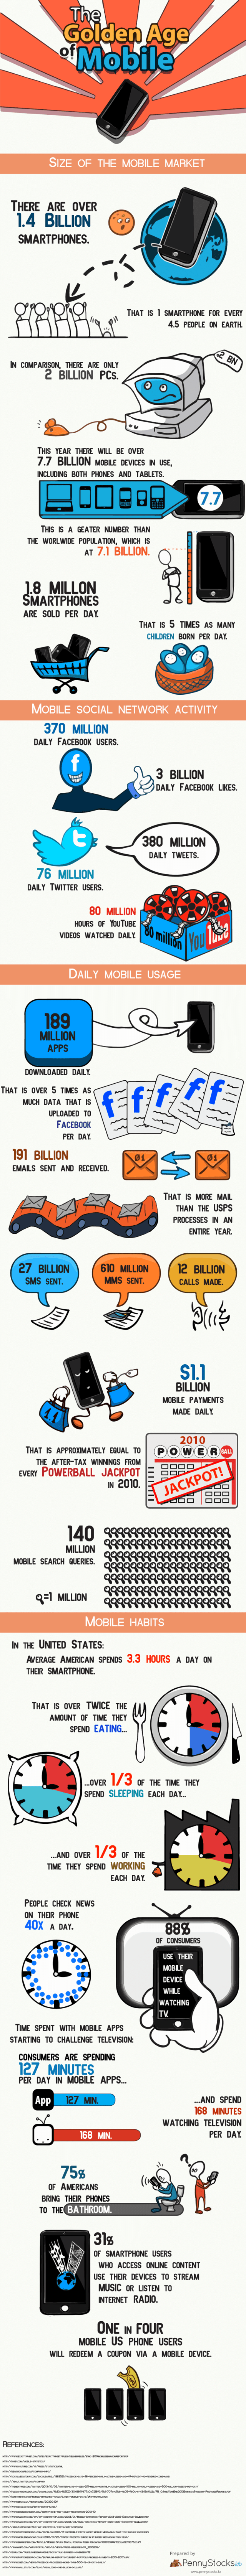 the-golden-age-of-mobile-infographic-final